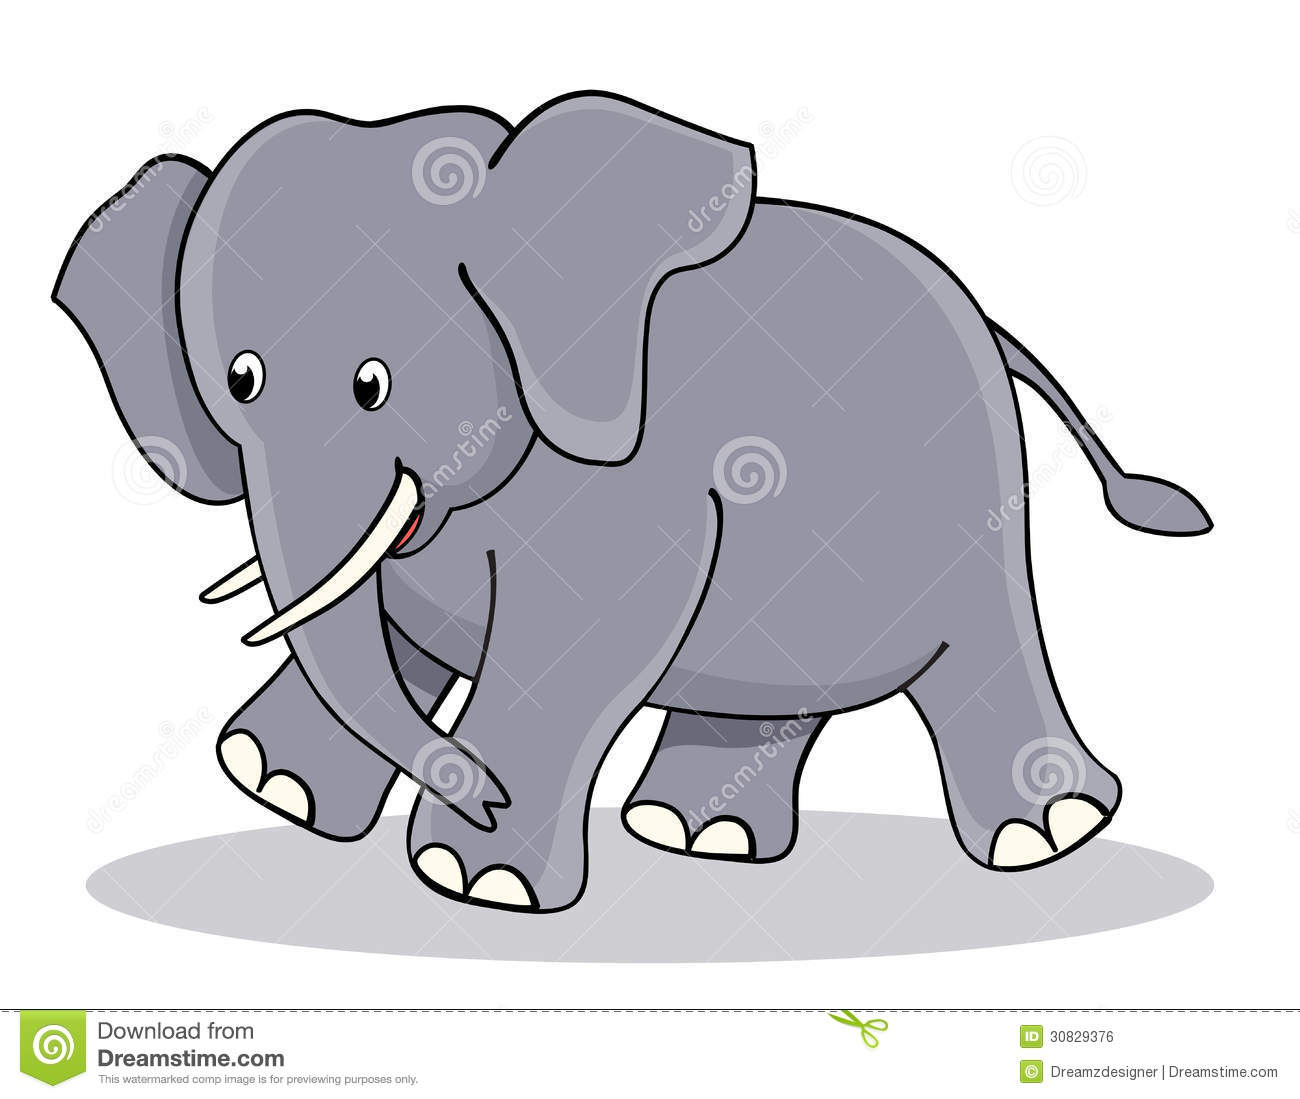 Cute Baby Elephant Royalty Free Stock Image - Image: 30829376